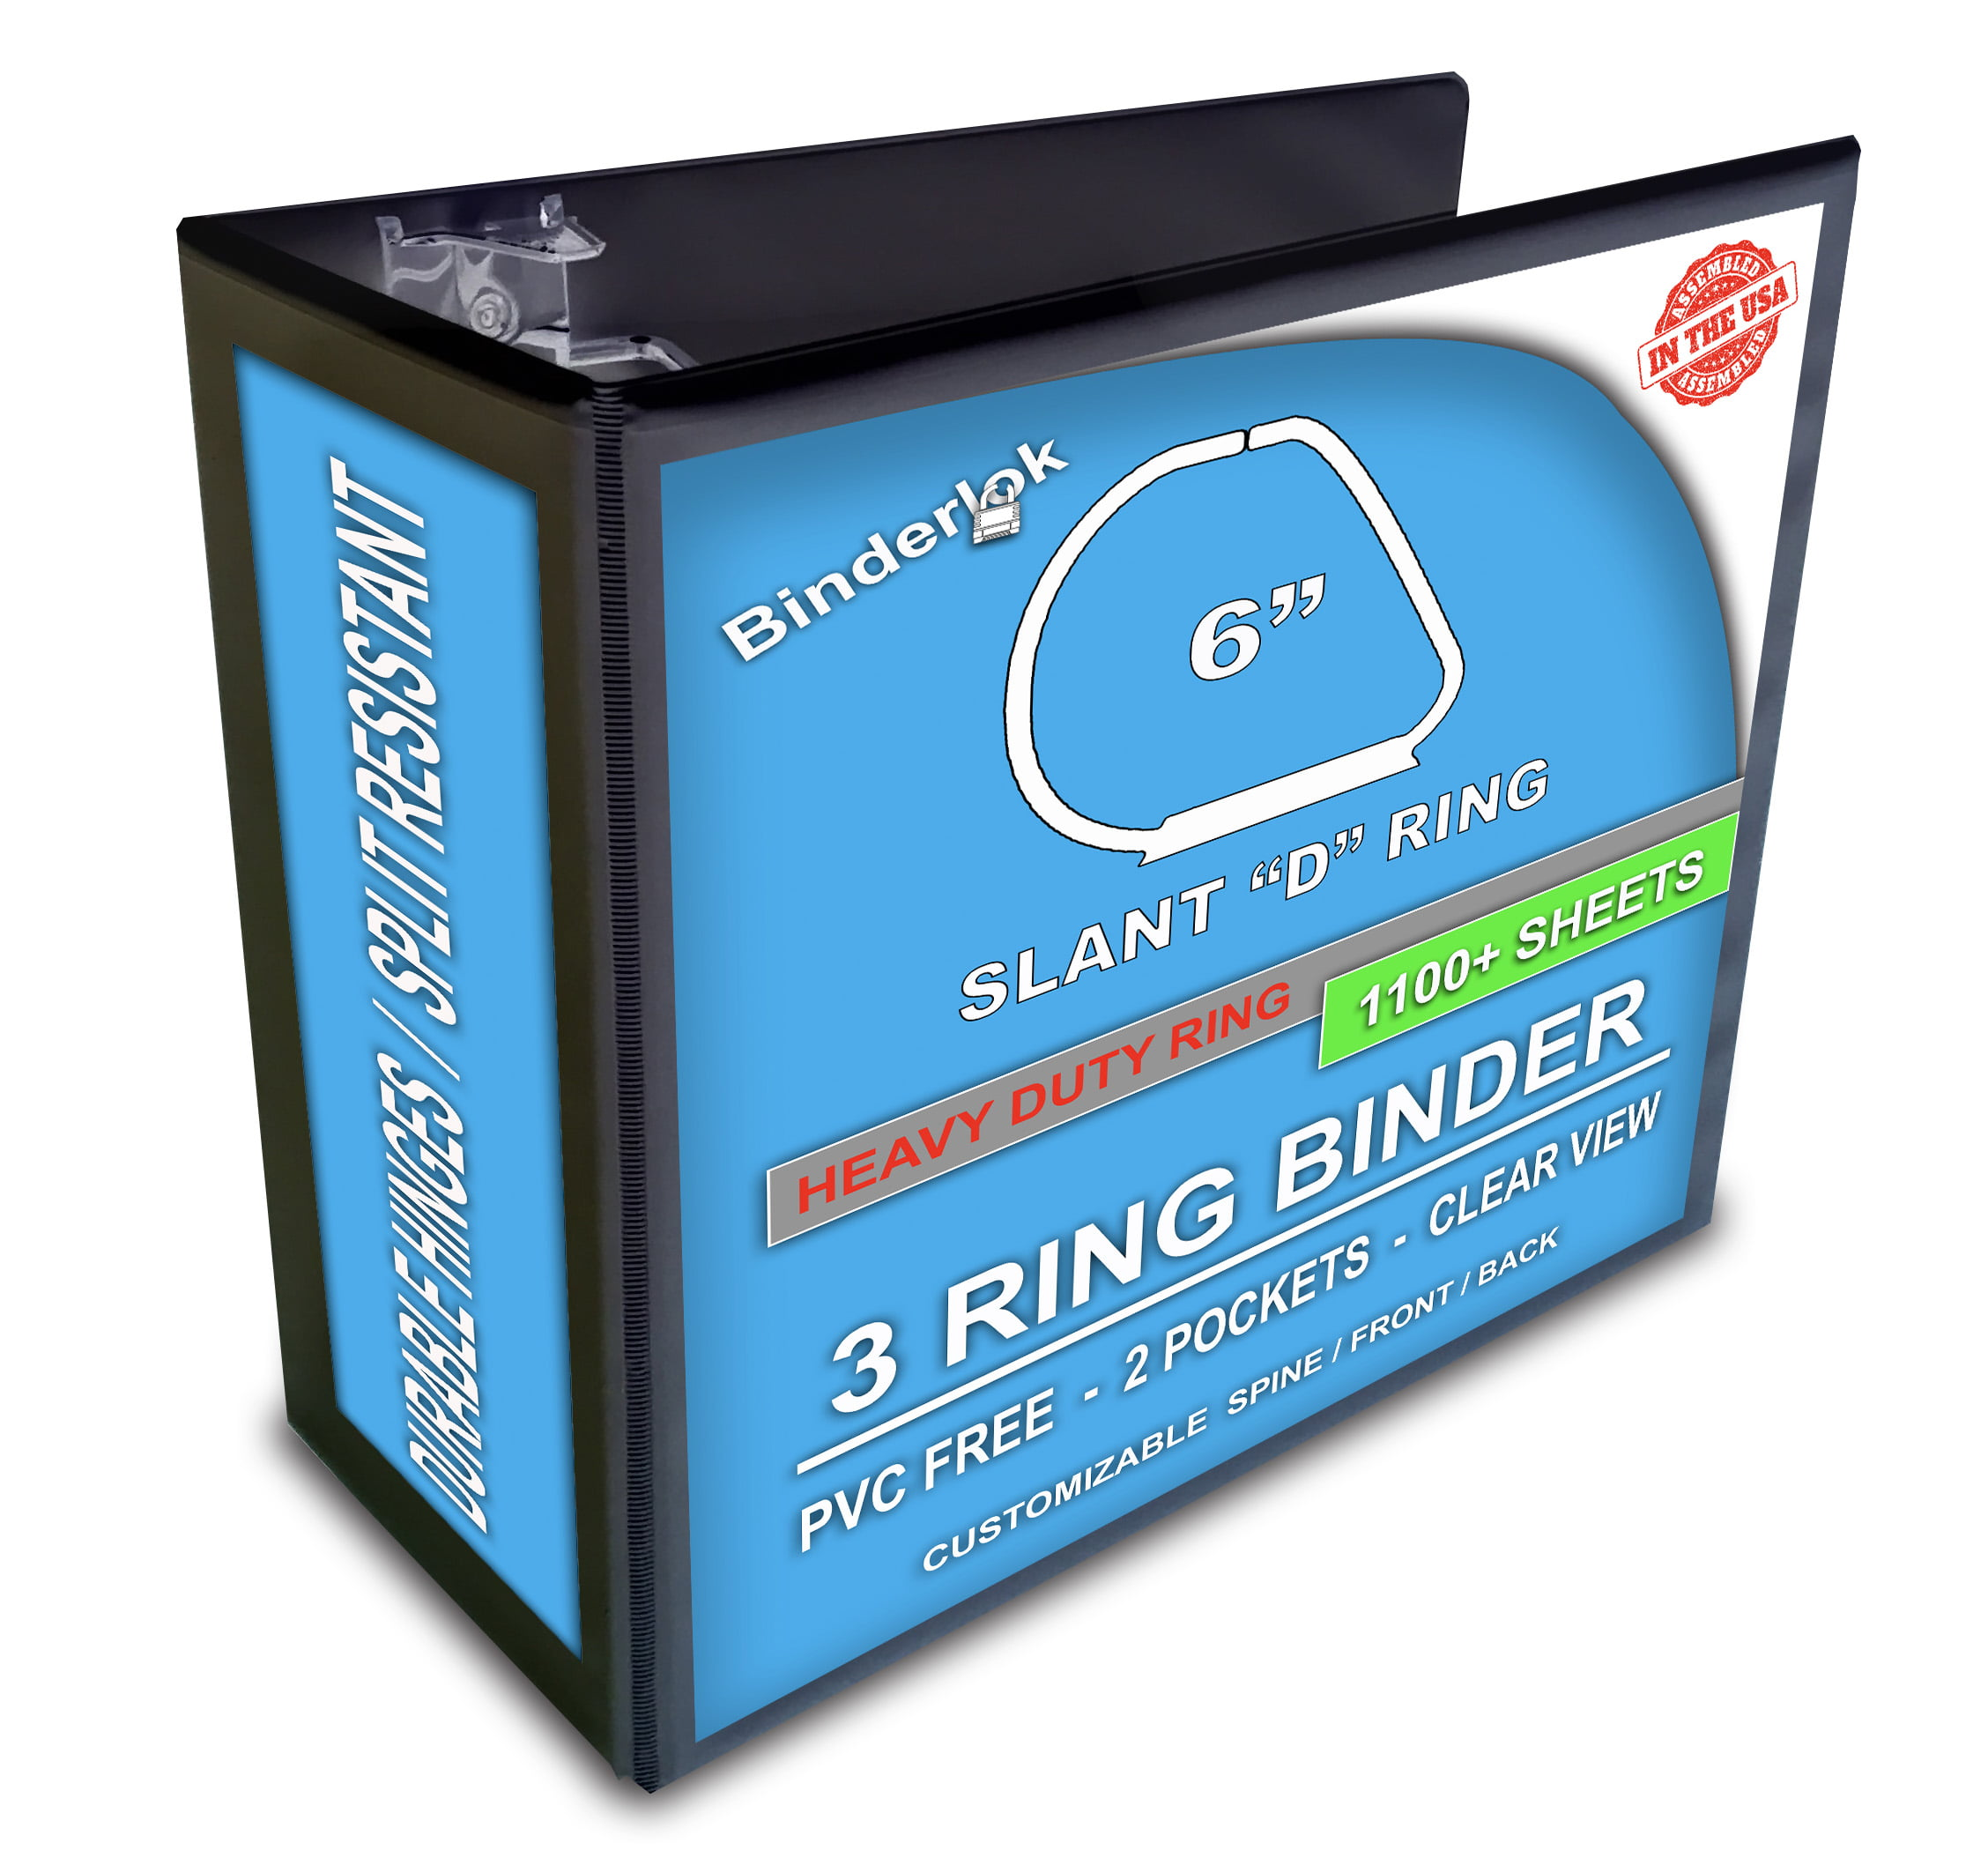 Clear View 3 Ring Binder Black Slant D-Rings 5 Inch Pockets